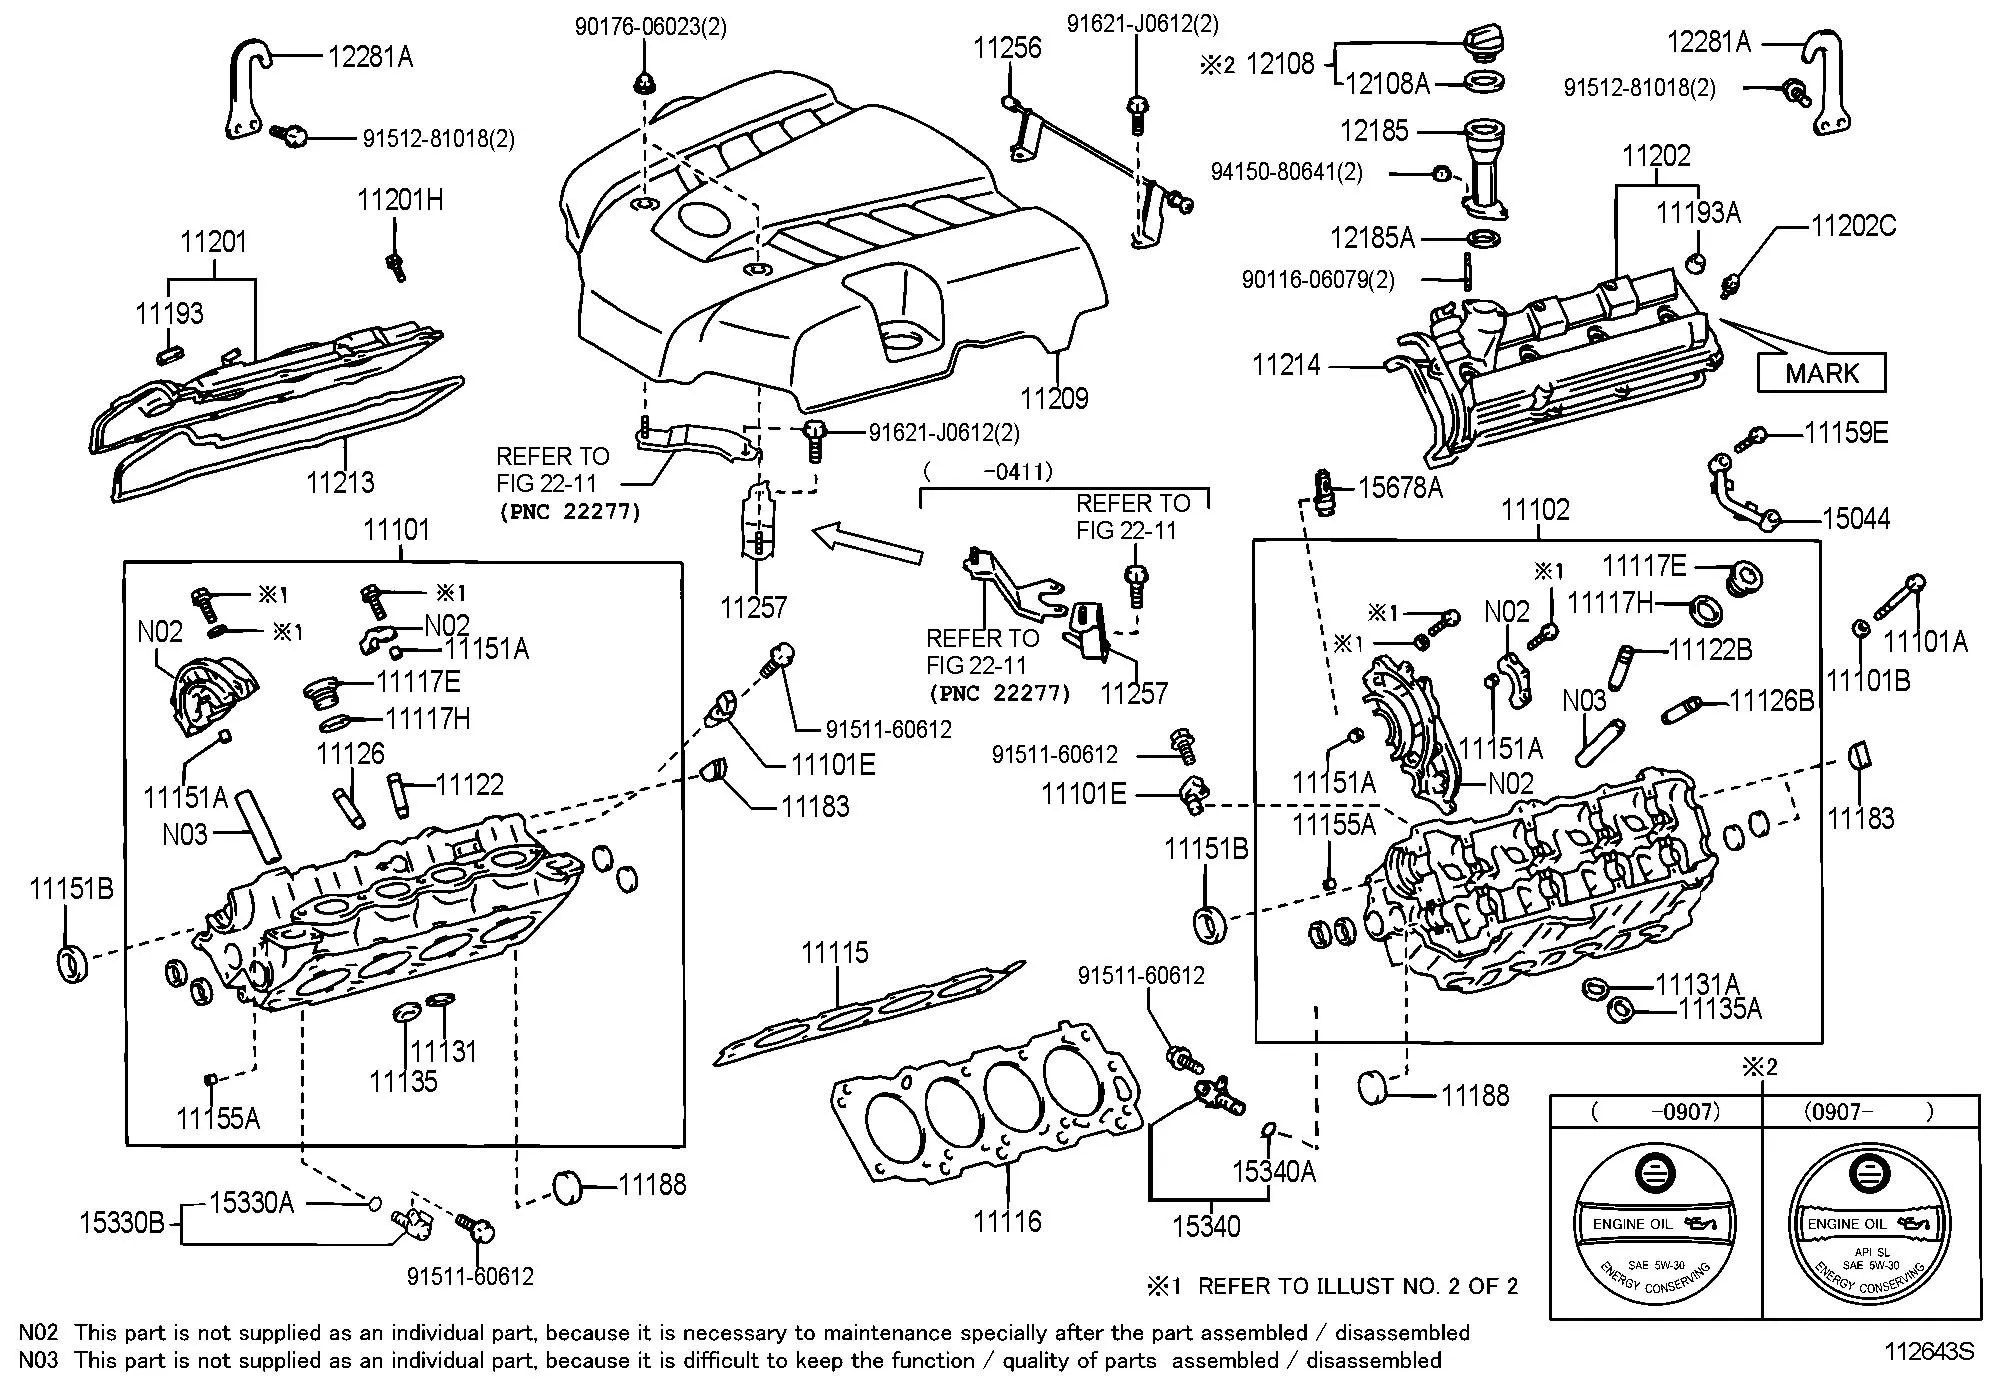 hight resolution of lexus rx300 engine diagram lexus es300 engine diagram lexus wiring diagrams instructions of lexus rx300 engine